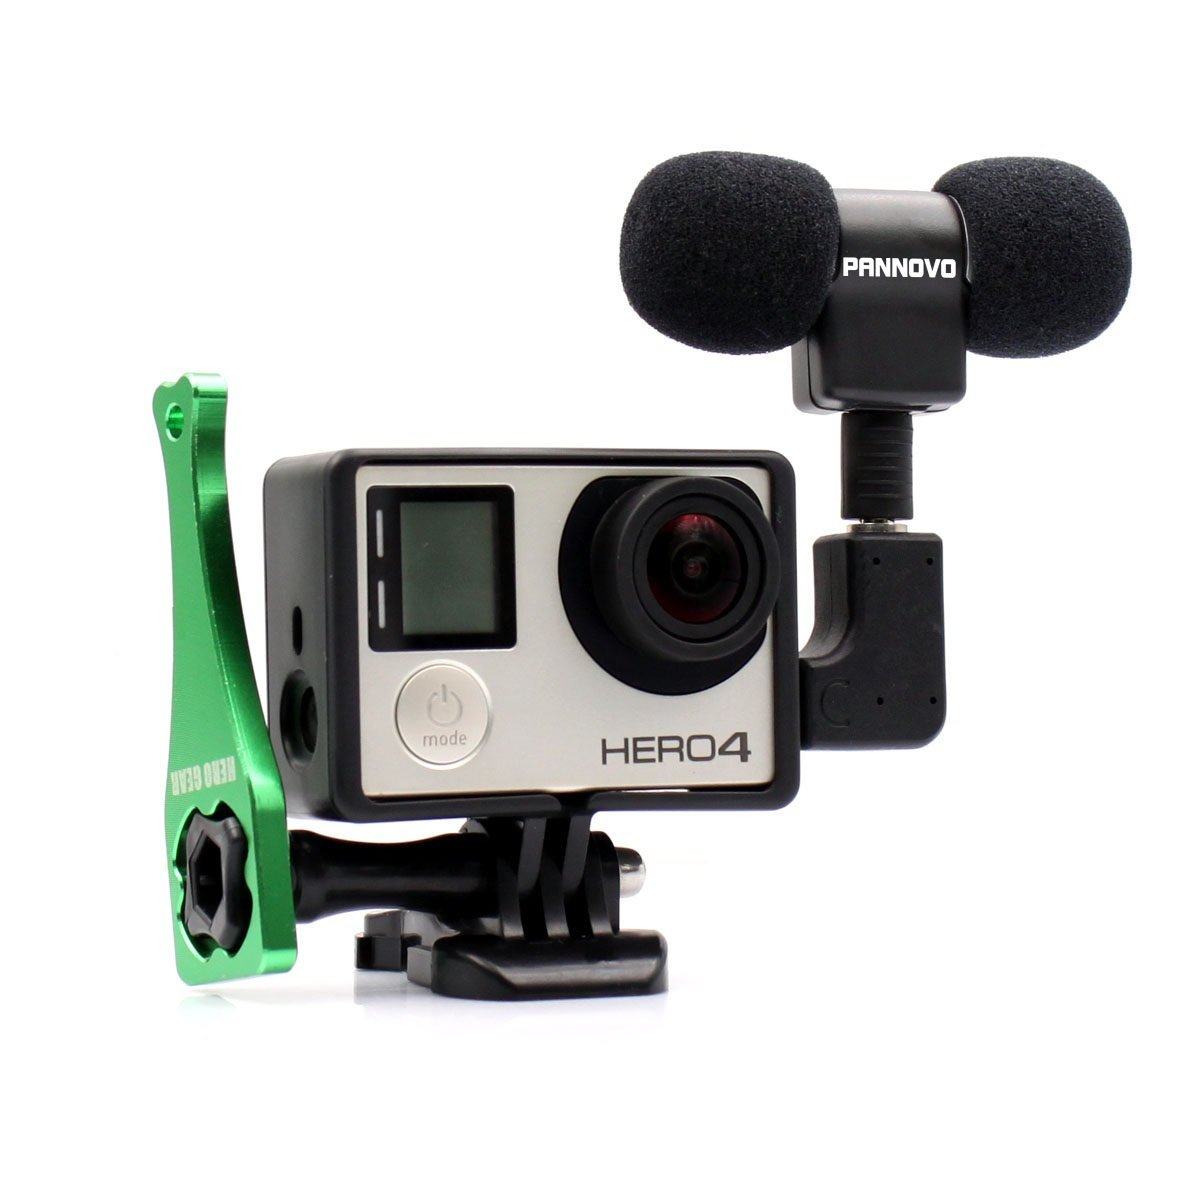 Microphone for Gopro, PANNOVO 3.5mm mini Mic microphone Adapter accessories for Gopro hero 3 3+ 4 and Digital Cameras